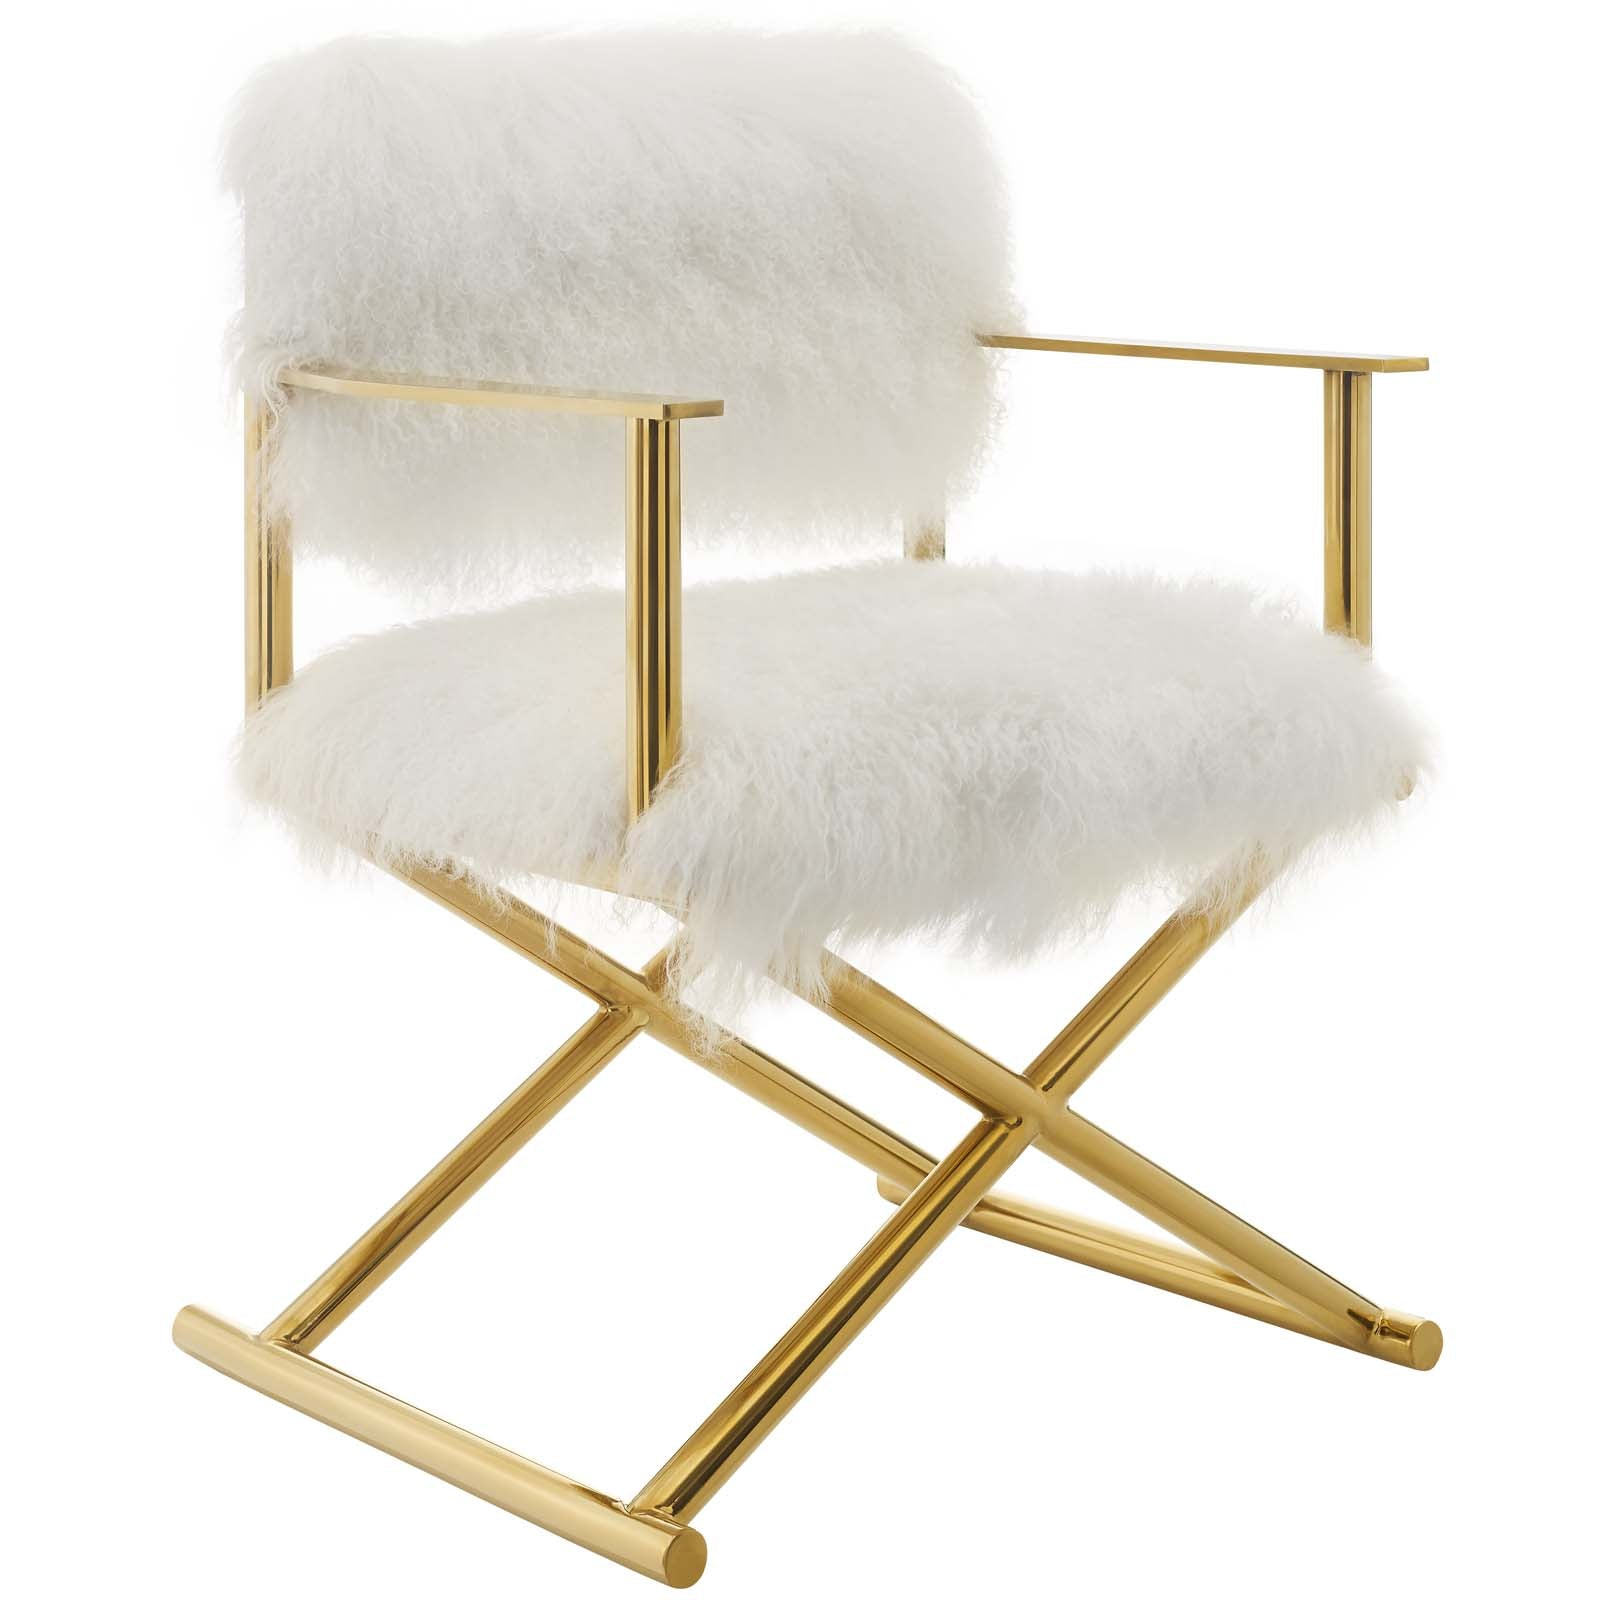 Tremendous Modway Accent Chairs On Sale Eei 3269 Gld Whi Action Pure White Cashmere Accent Directors Chair Only Only 755 30 At Contemporary Furniture Creativecarmelina Interior Chair Design Creativecarmelinacom